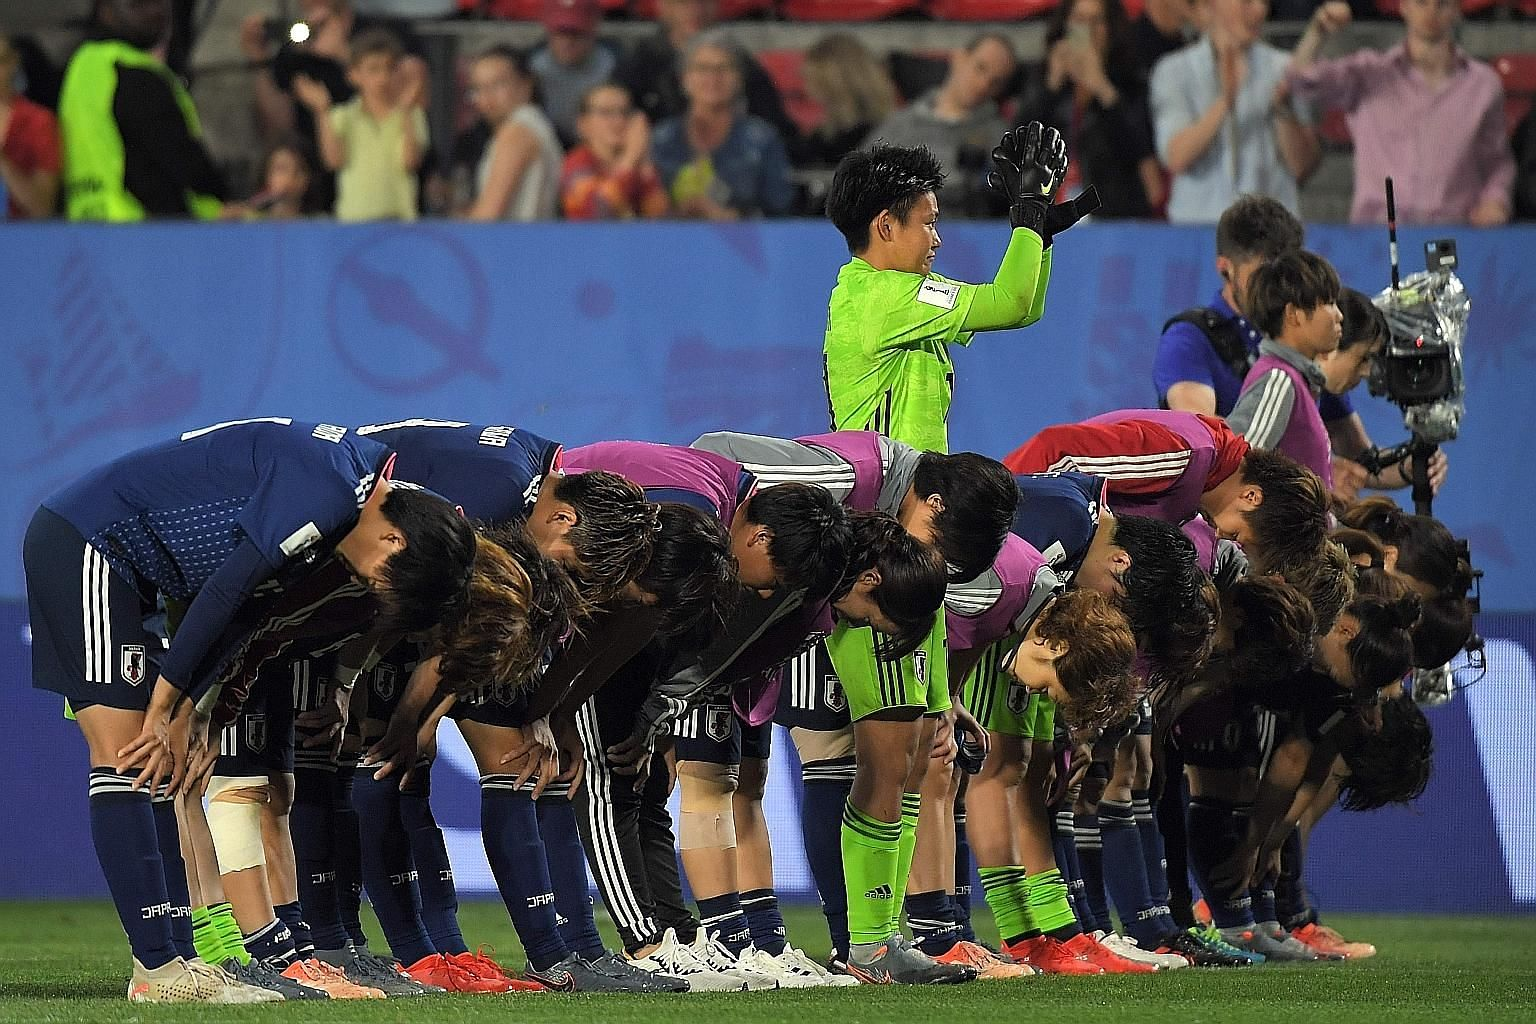 Japan's players bow in acknowledging their supporters after their 2-1 loss to the Netherlands in the round of 16. The Japanese, World Cup finalists in 2015, fell to a late penalty. Below: Wang Shuang failed to shine for China in their 2-0 defeat by I